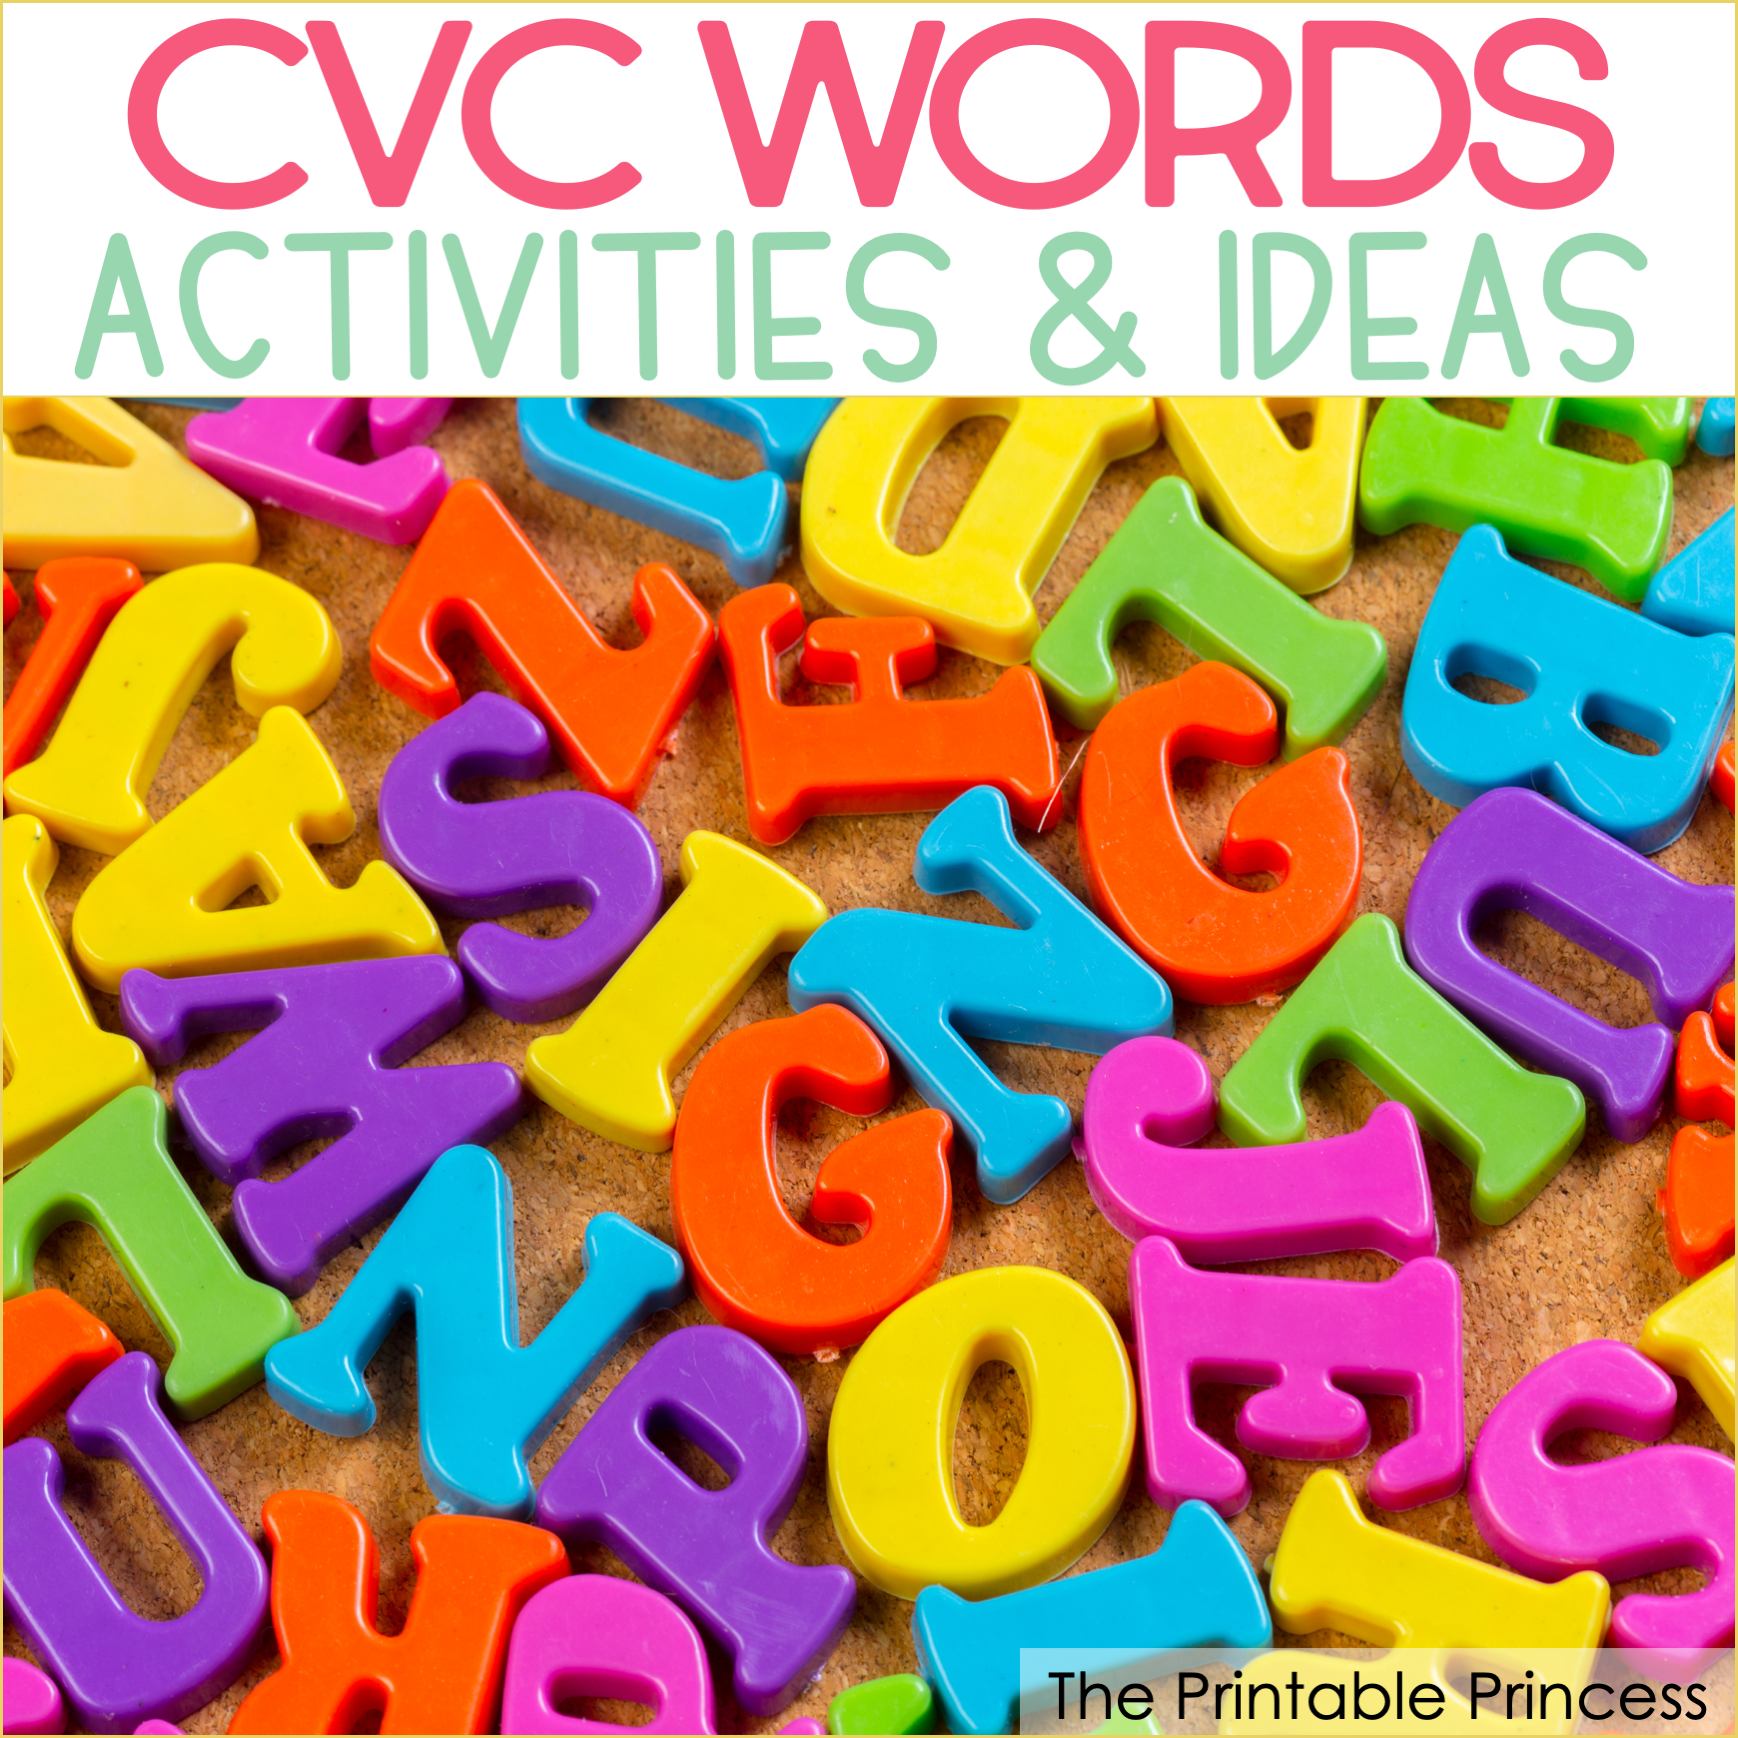 CVC Words: What Are They and Why Are They Important?